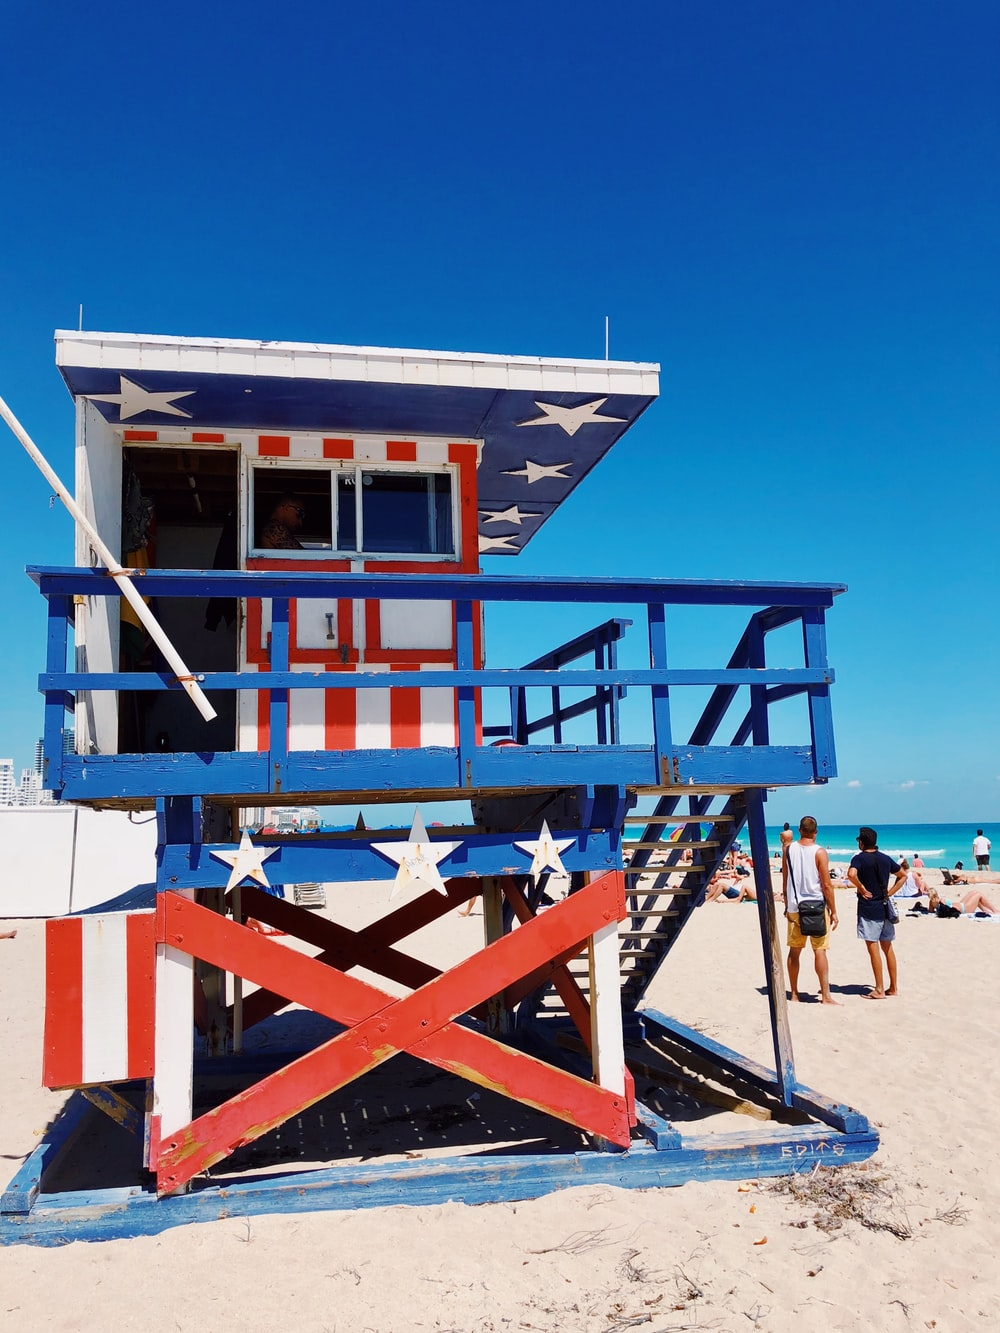 white, blue, and red American flag printed wooden lifeguard house on beach